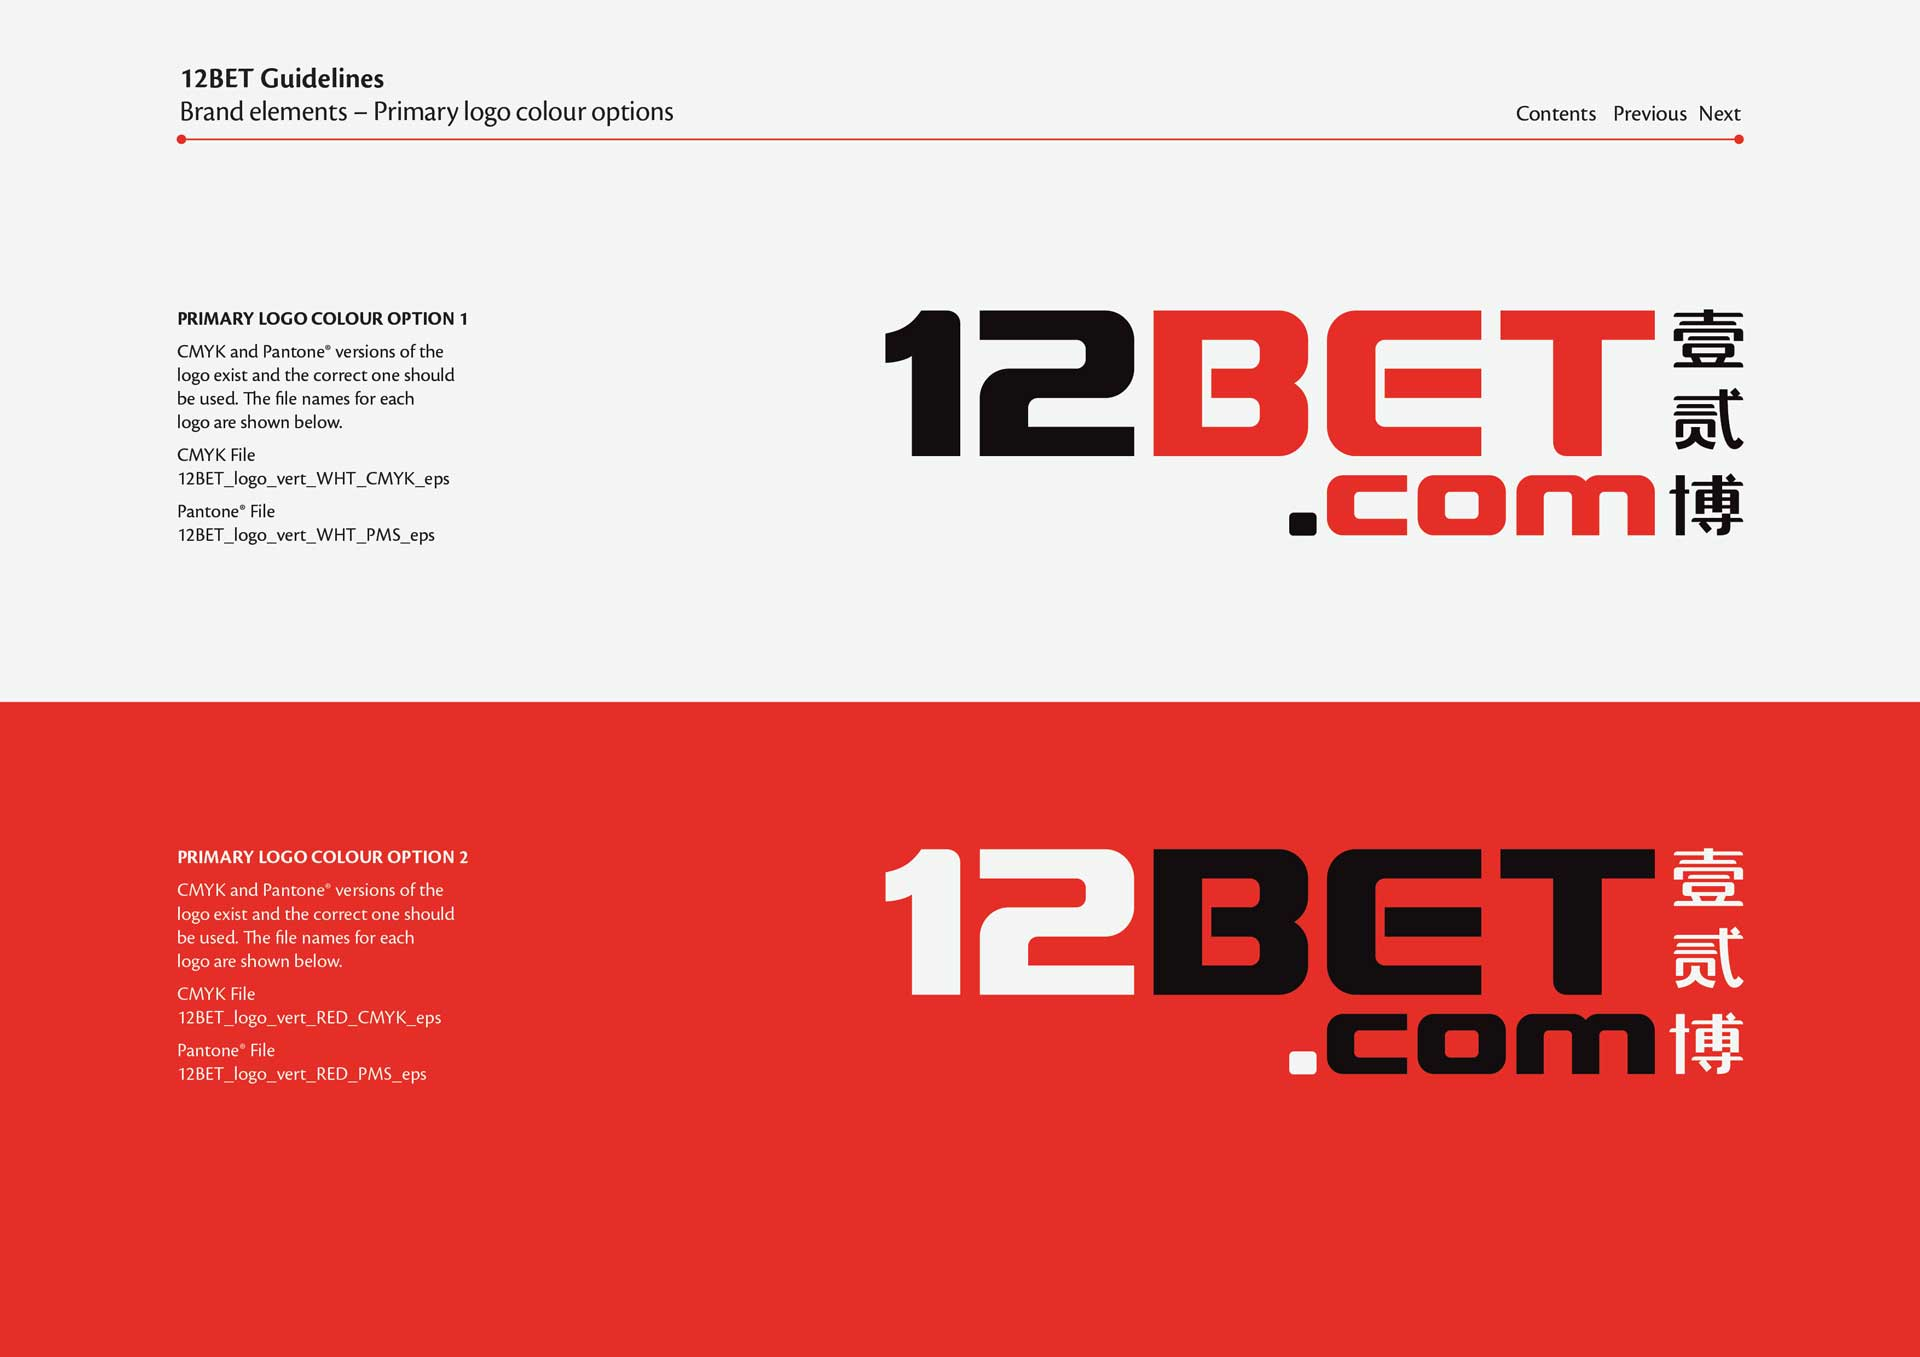 12bet-sports-betting-brand-guidelines-1